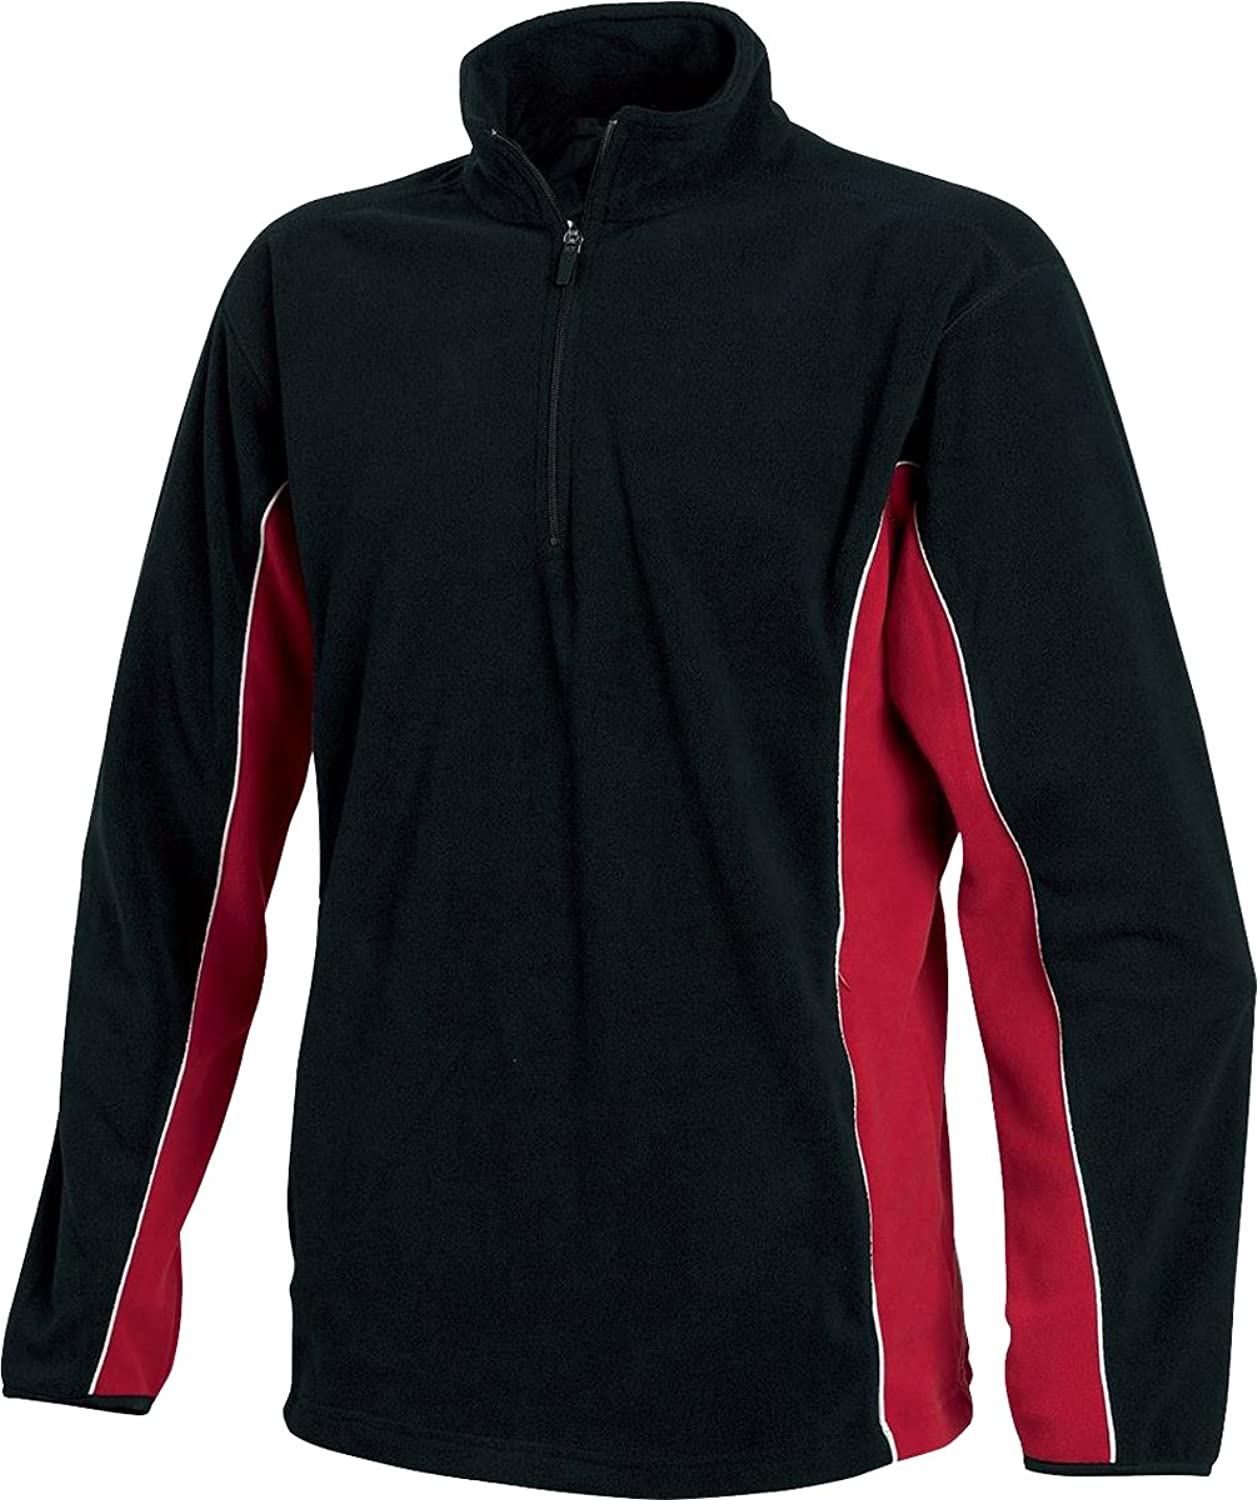 New Tombo Teamsport Mens 1/4 Zip Micro Fleece Zip Neck Pullover Jumper Sweat Top